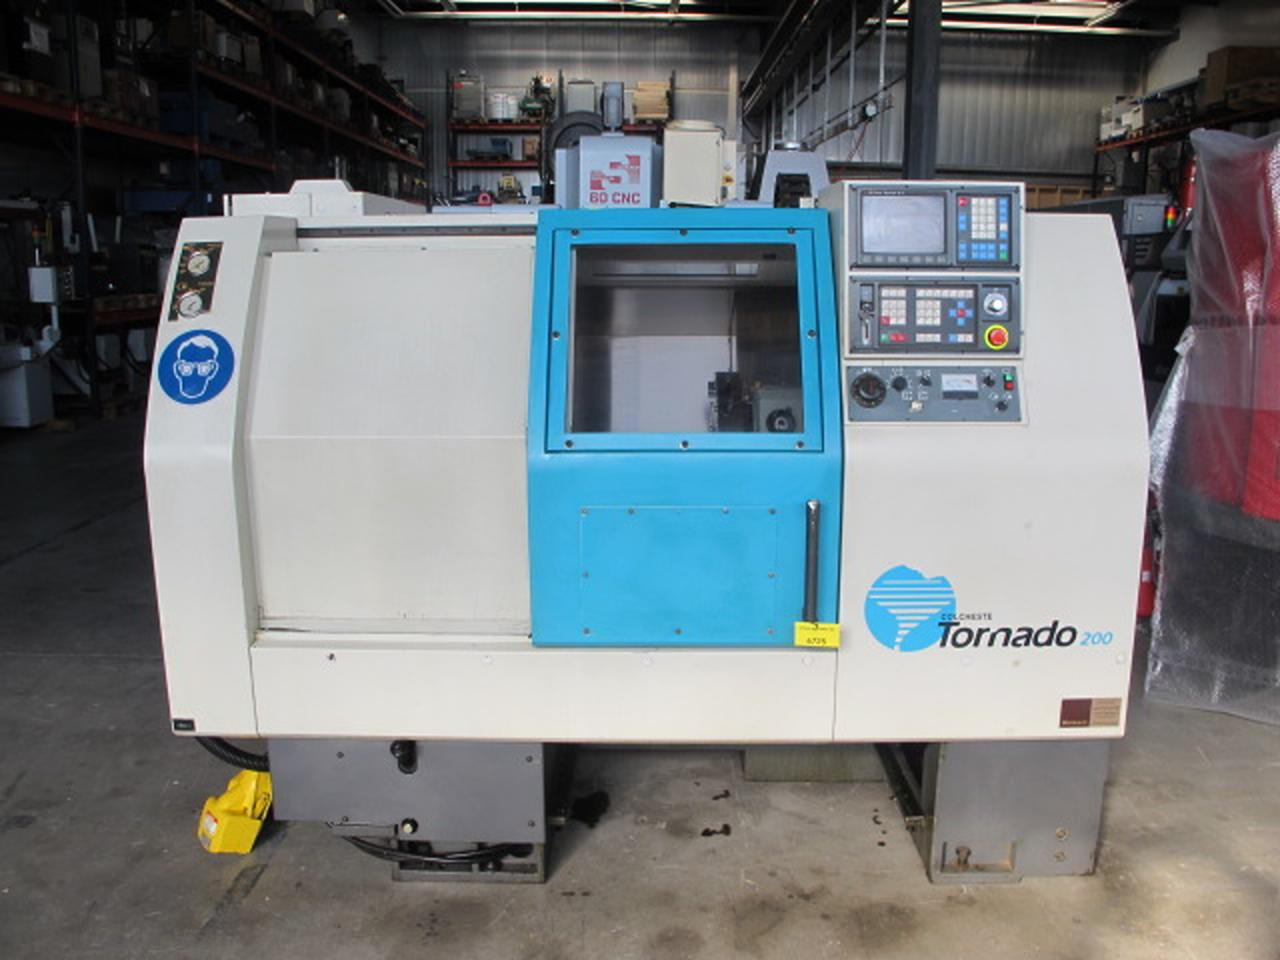 CNC turning lathe COLCHESTER TORNADO 200 A